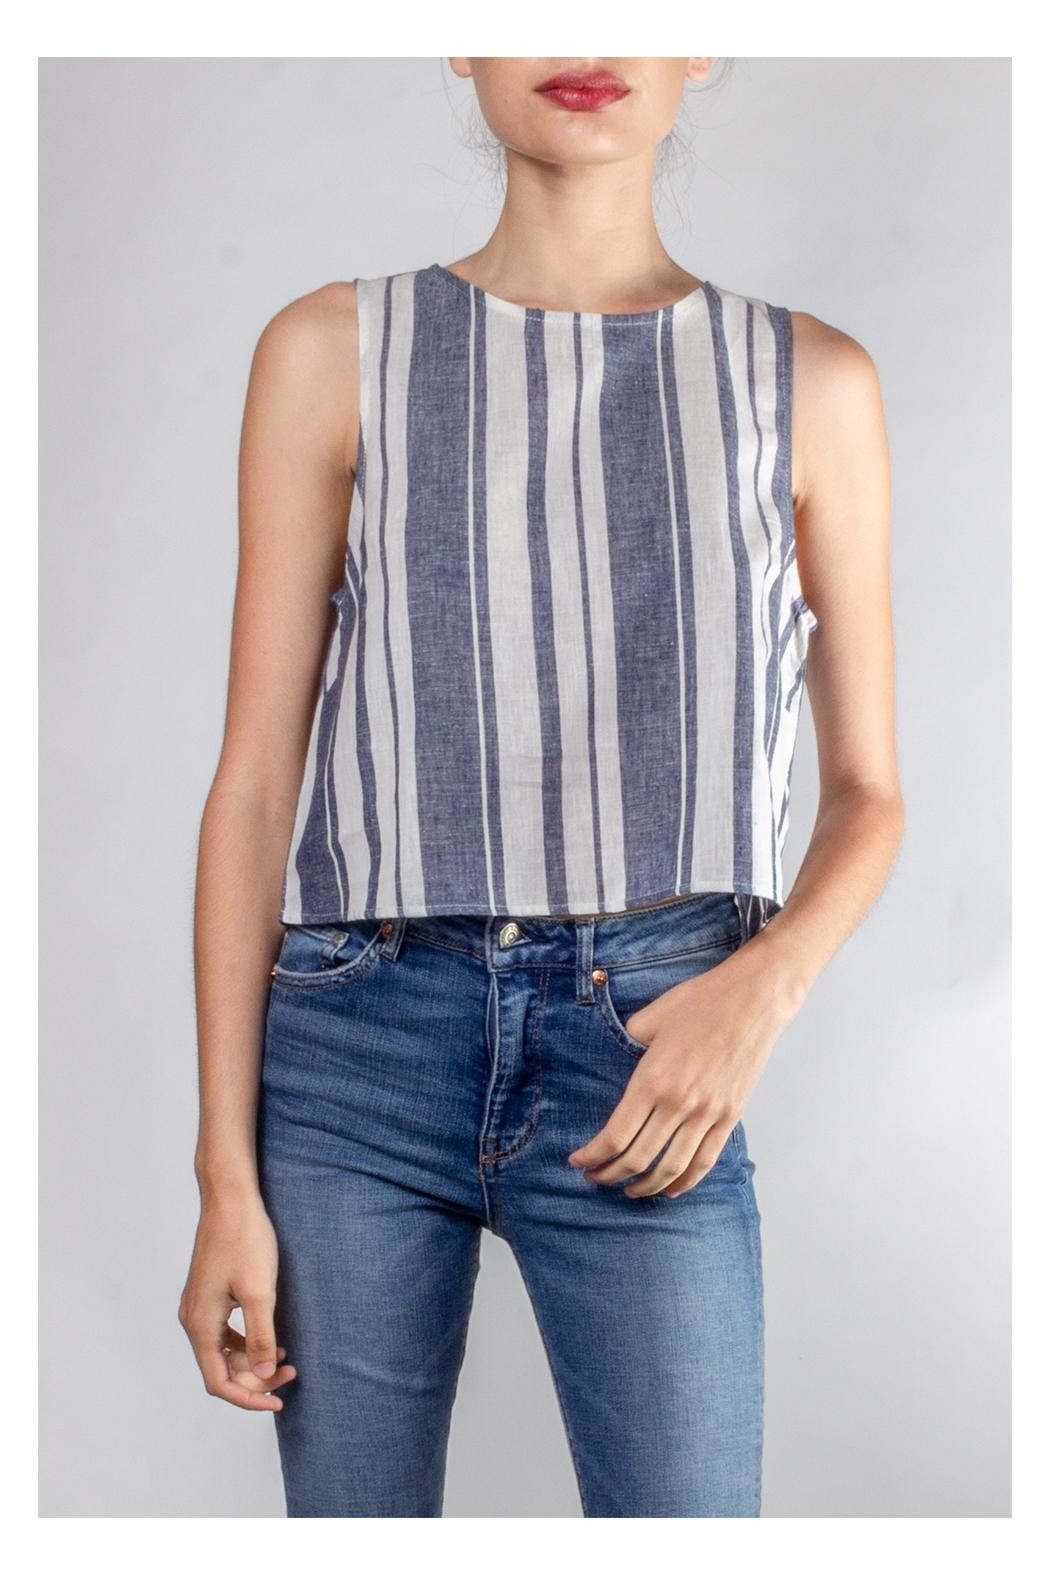 Lumiere Harbor Striped Crop-Top - Main Image